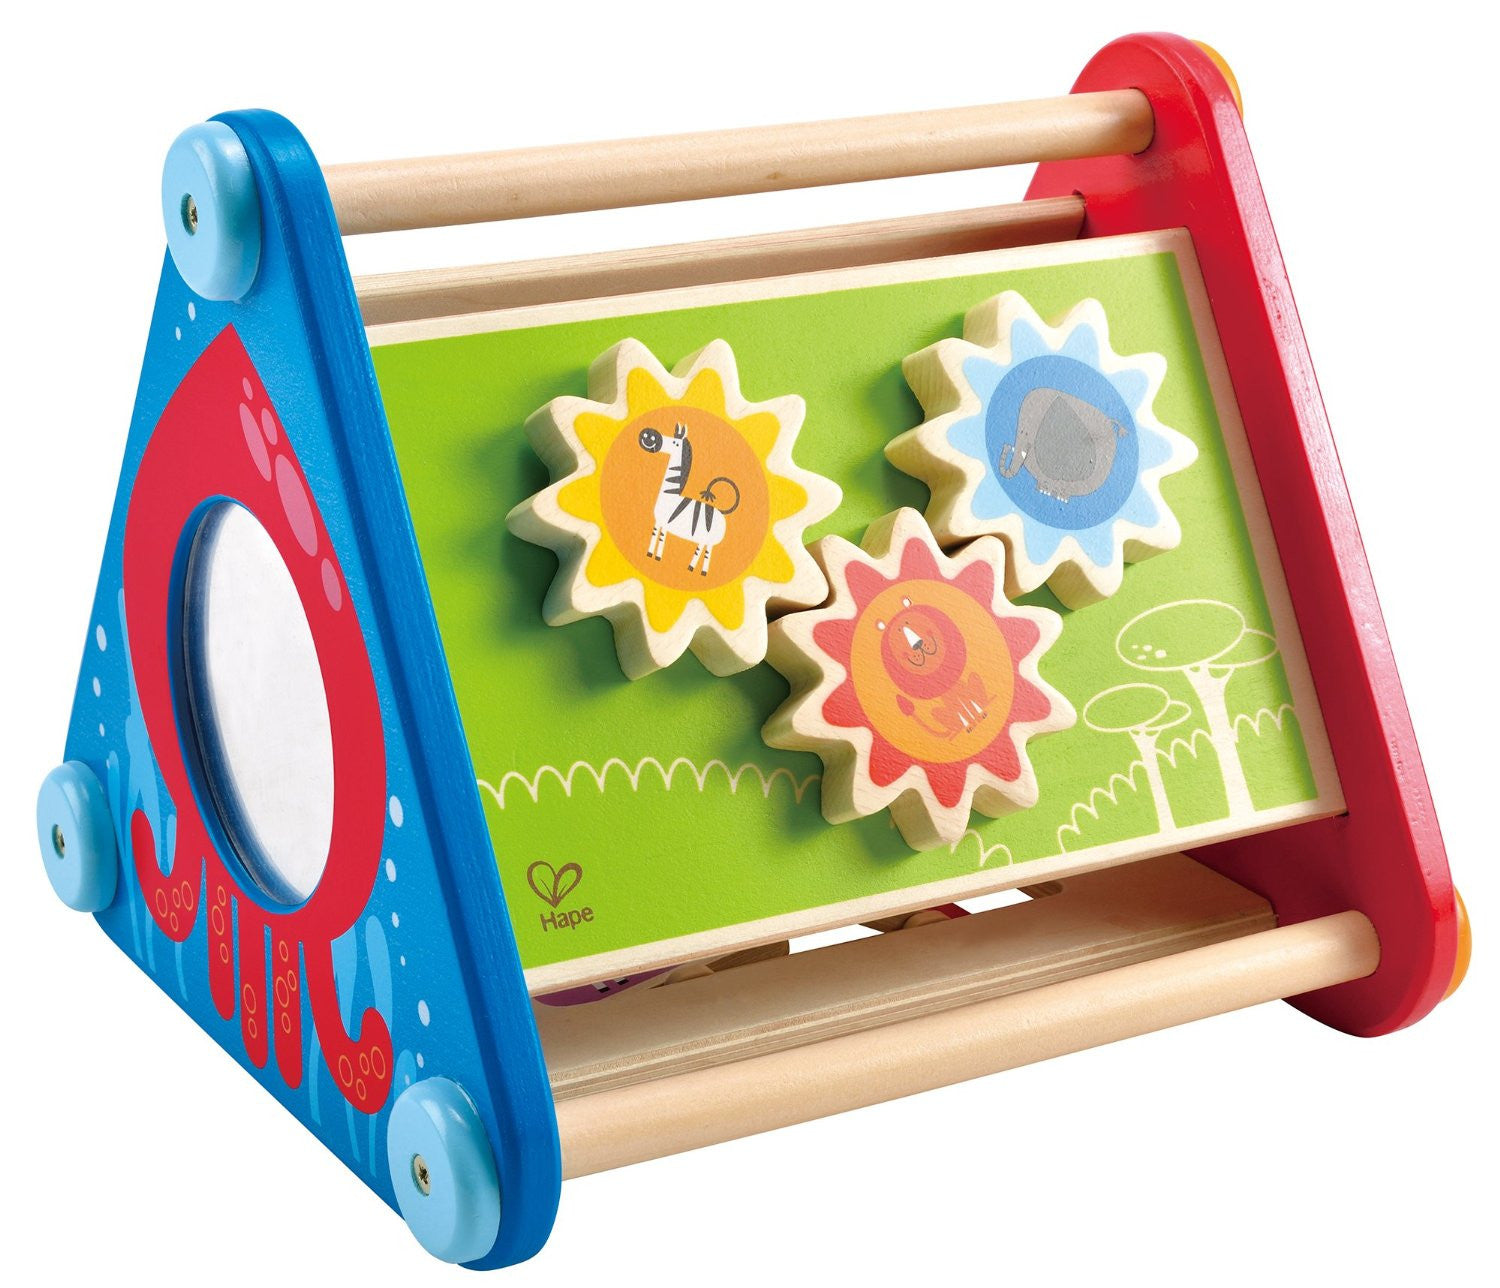 Hape Take-Along Activity Box